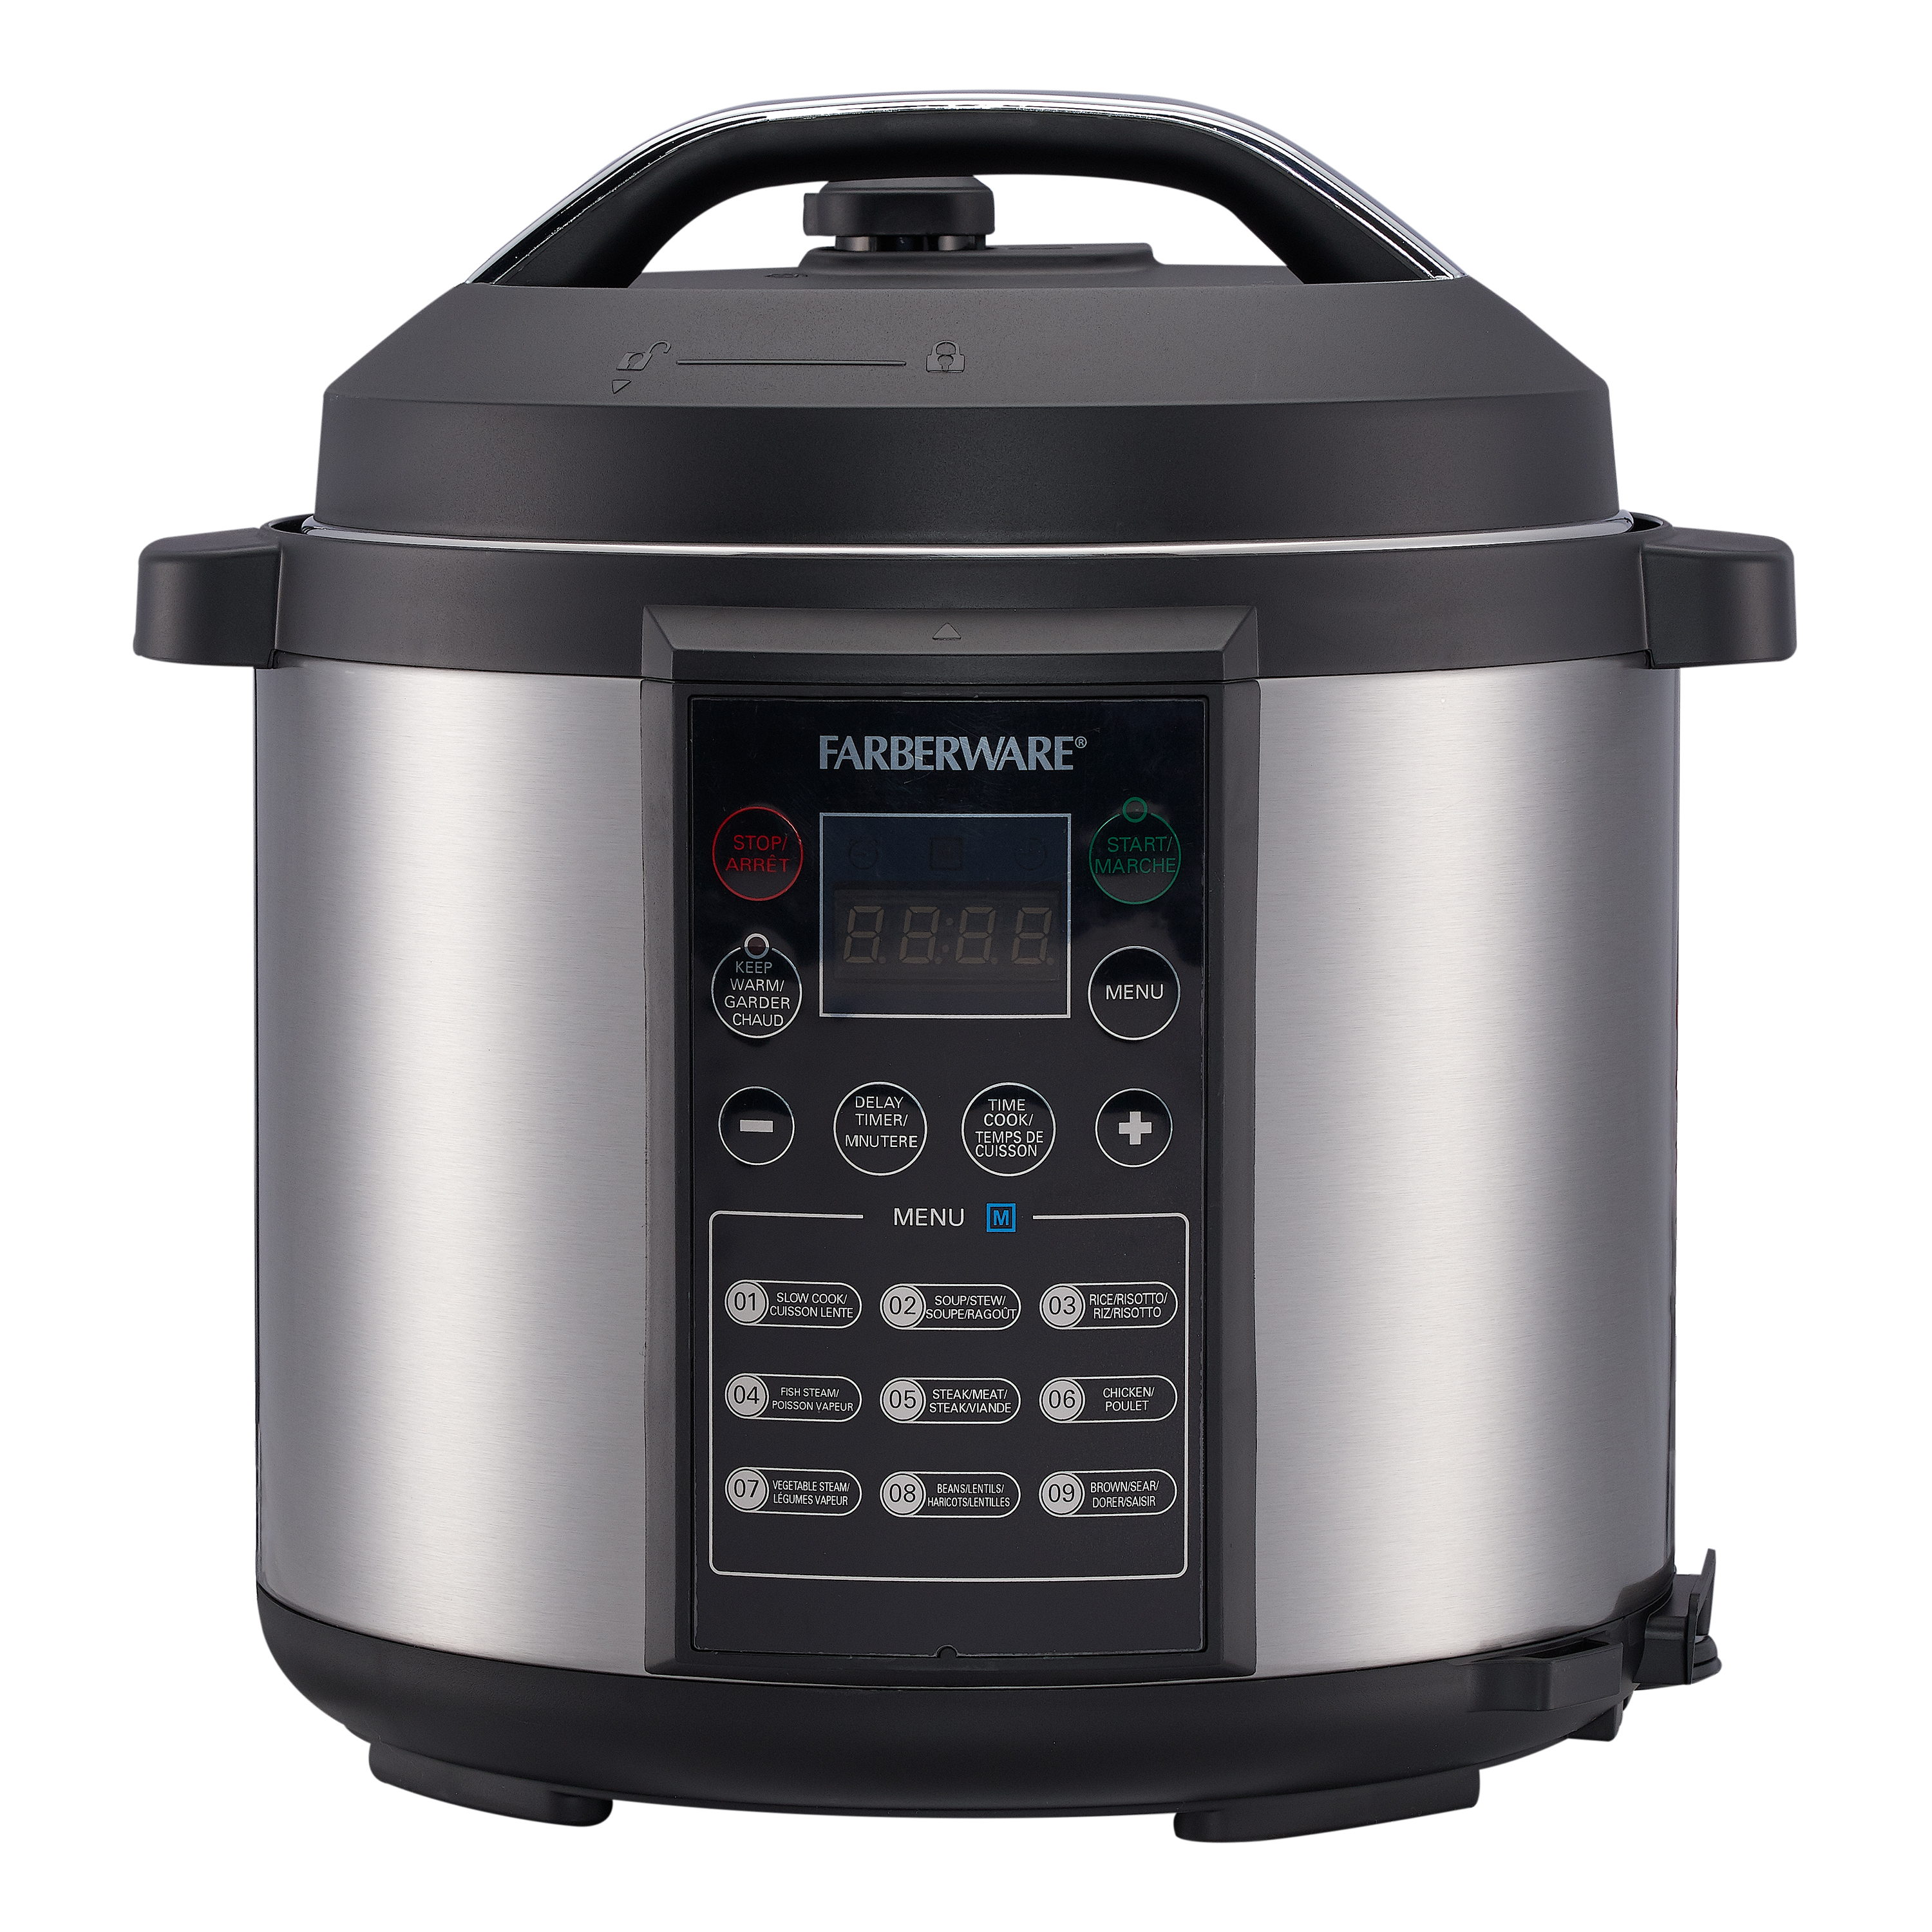 Big W Pressure Cooker Farberware Programmable Digital Pressure Cooker 6 Quart Walmart